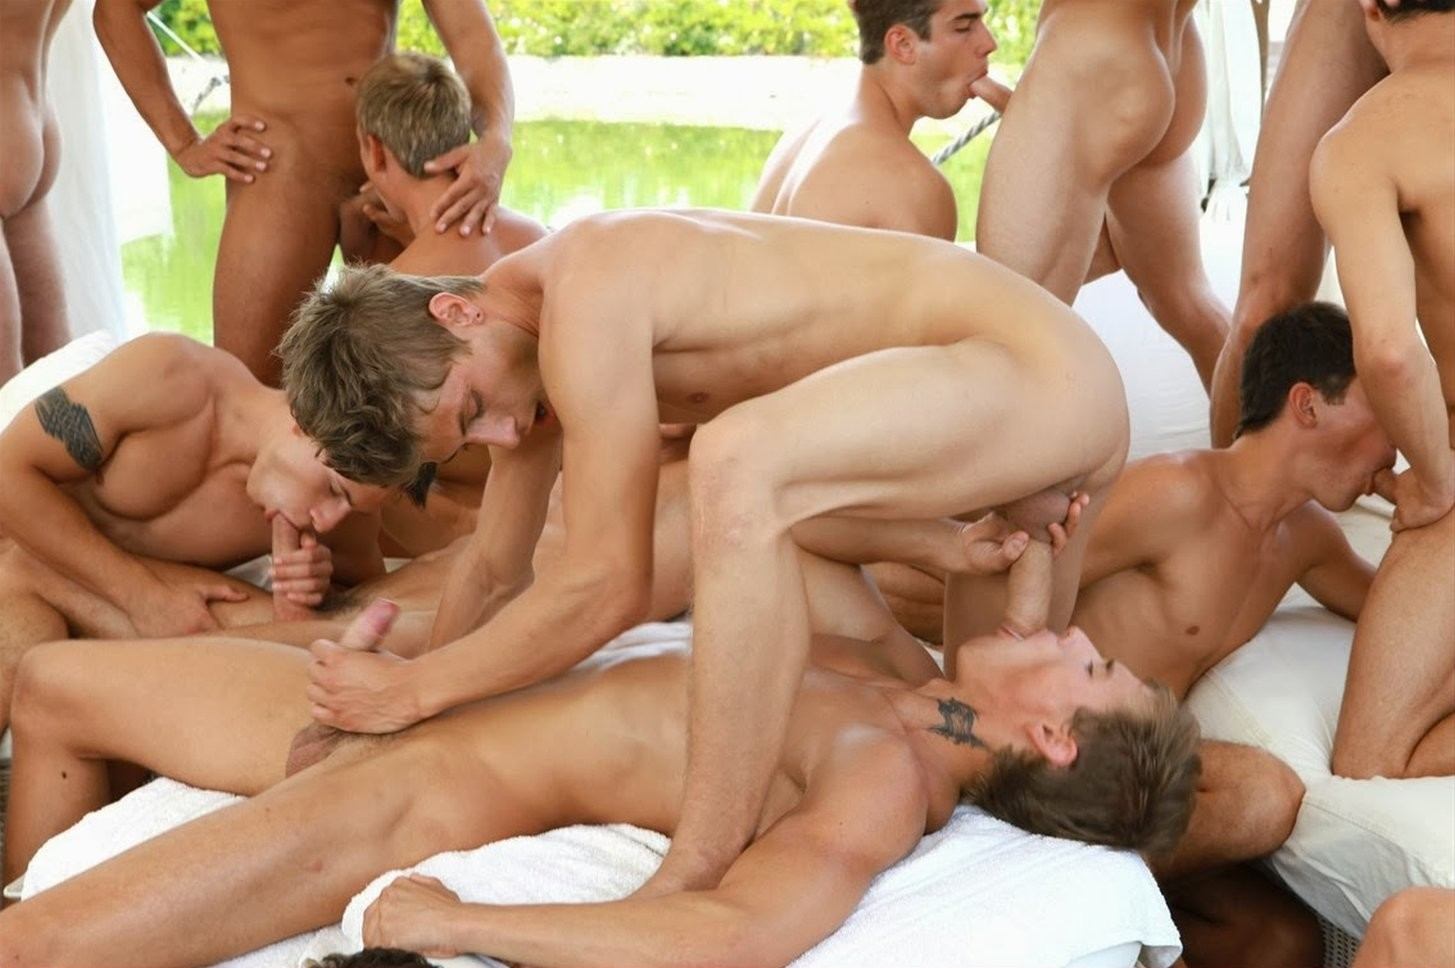 Family of gays have a hot orgy in the kitchen familycocks com